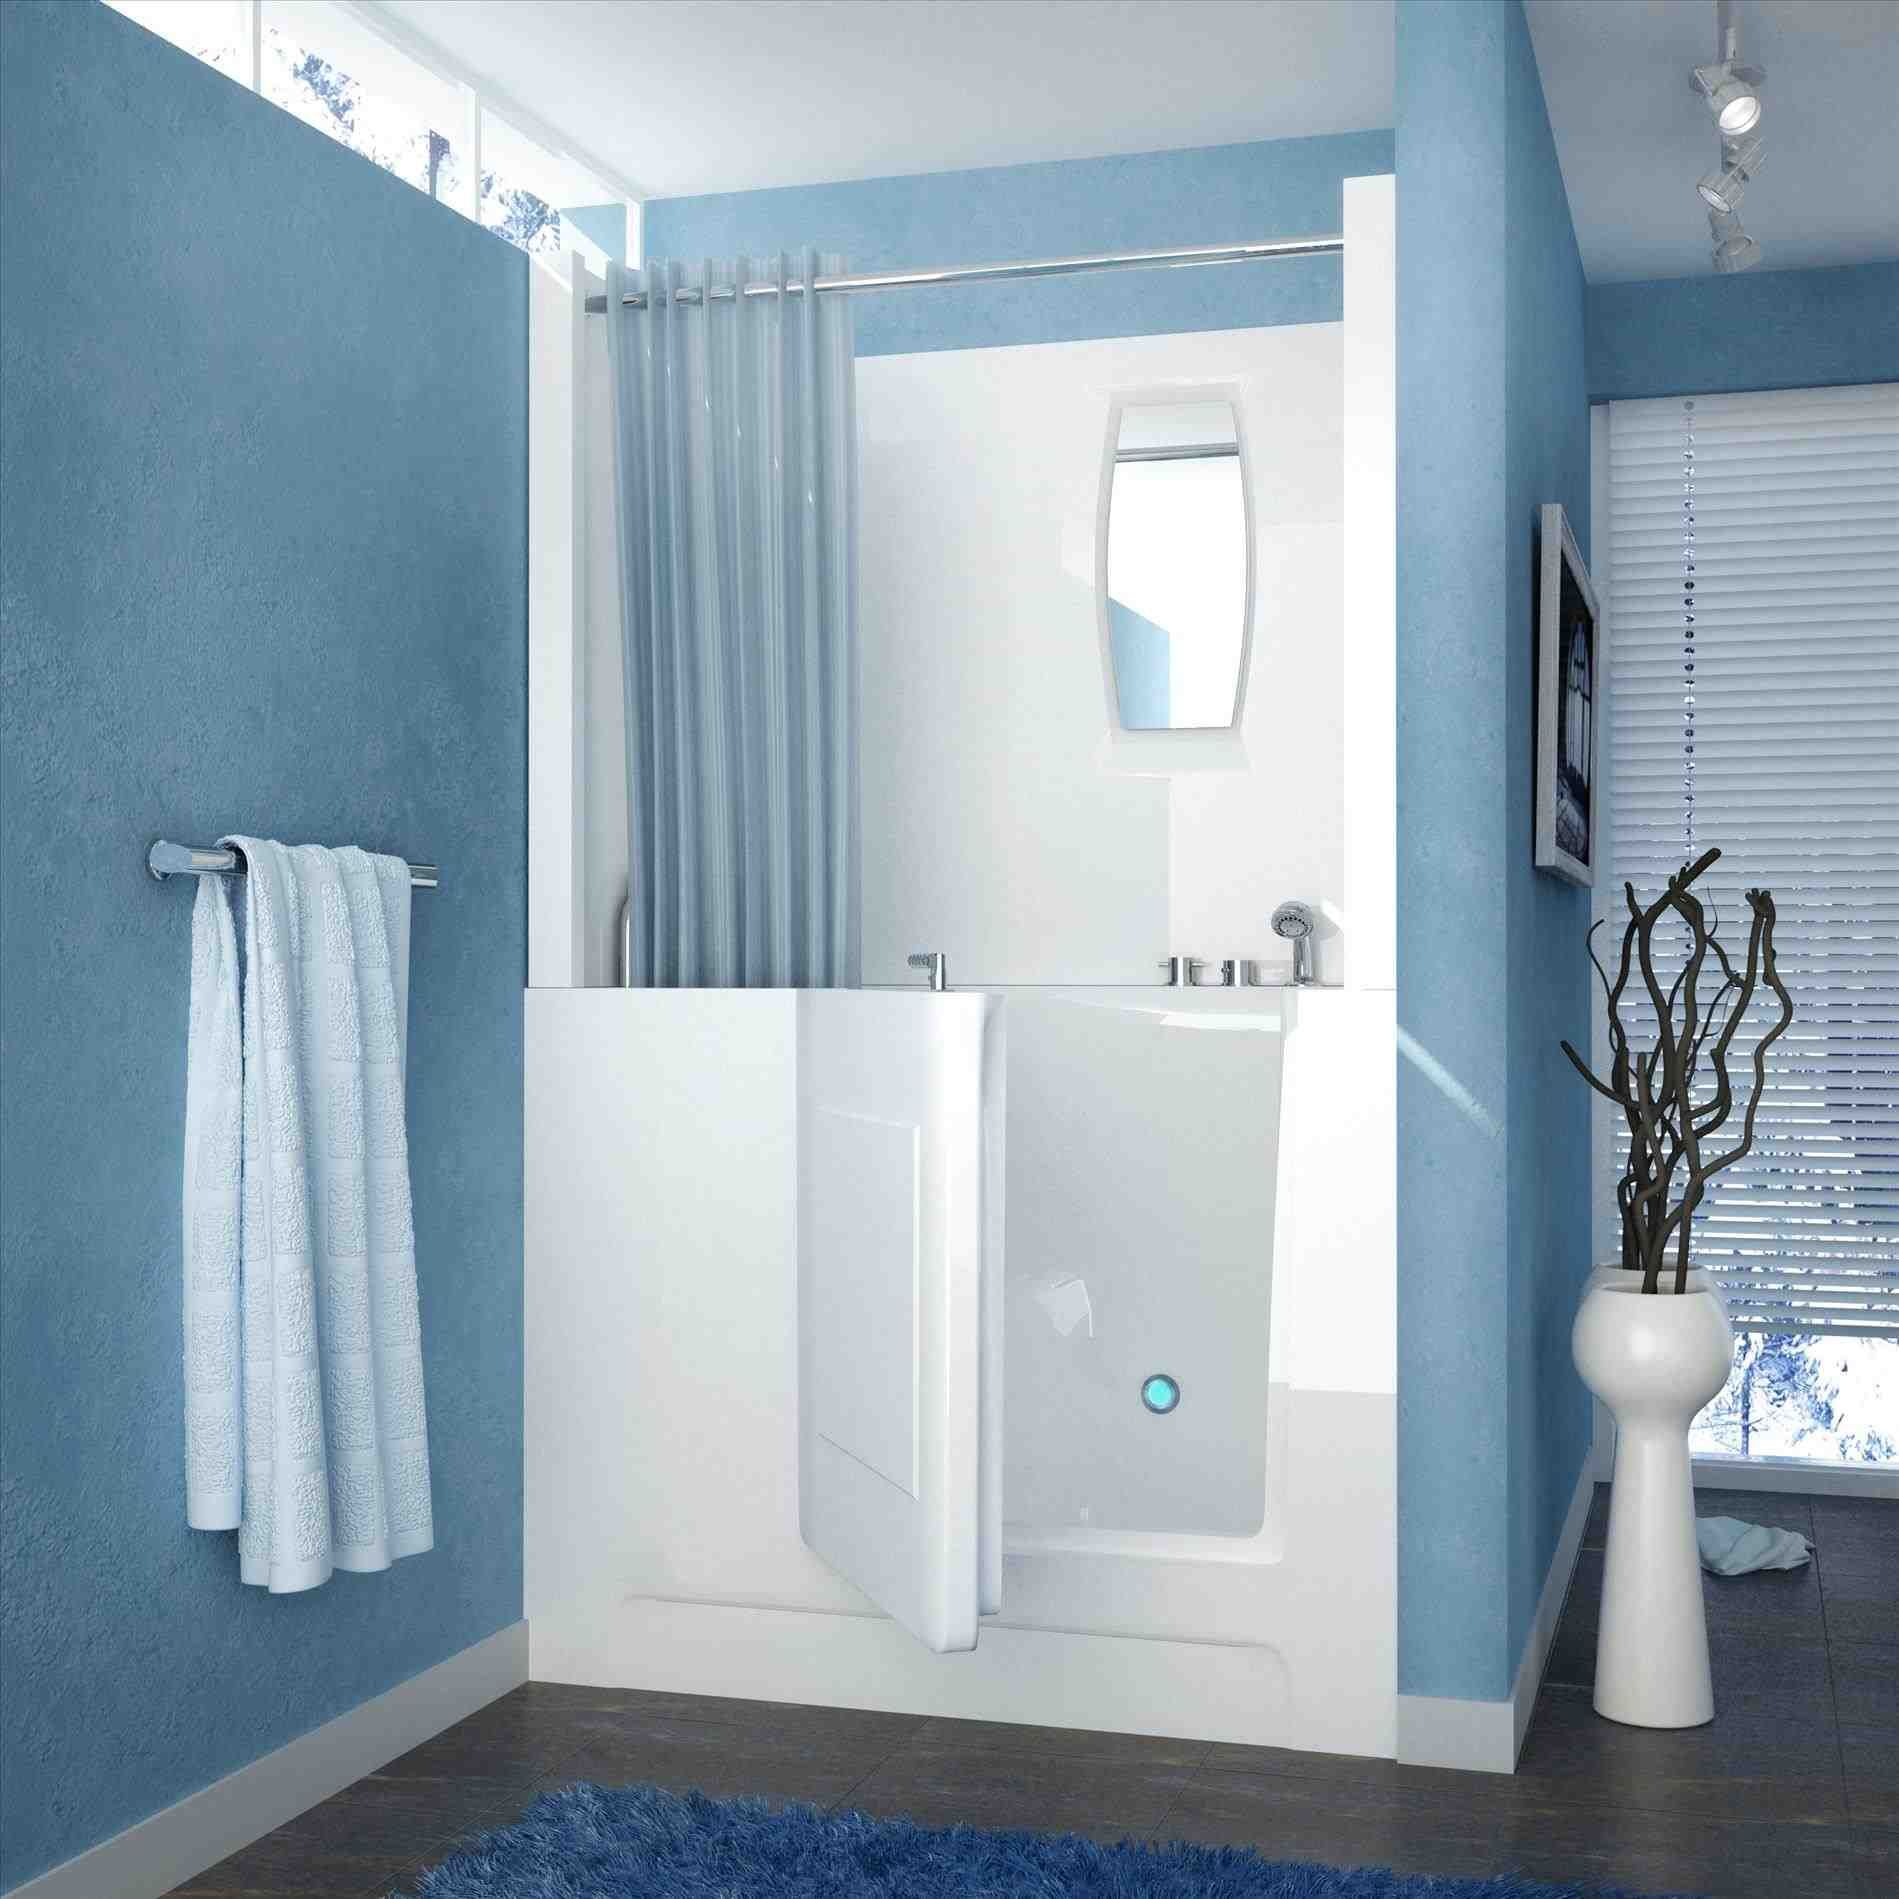 This Wide Bathtub Shower   Spacious Shower Many Homeowners Today Are  Forgoing Tubs . Mobile Home Showers And Tubs | Menards Bathtubs | Menards  Shower ...